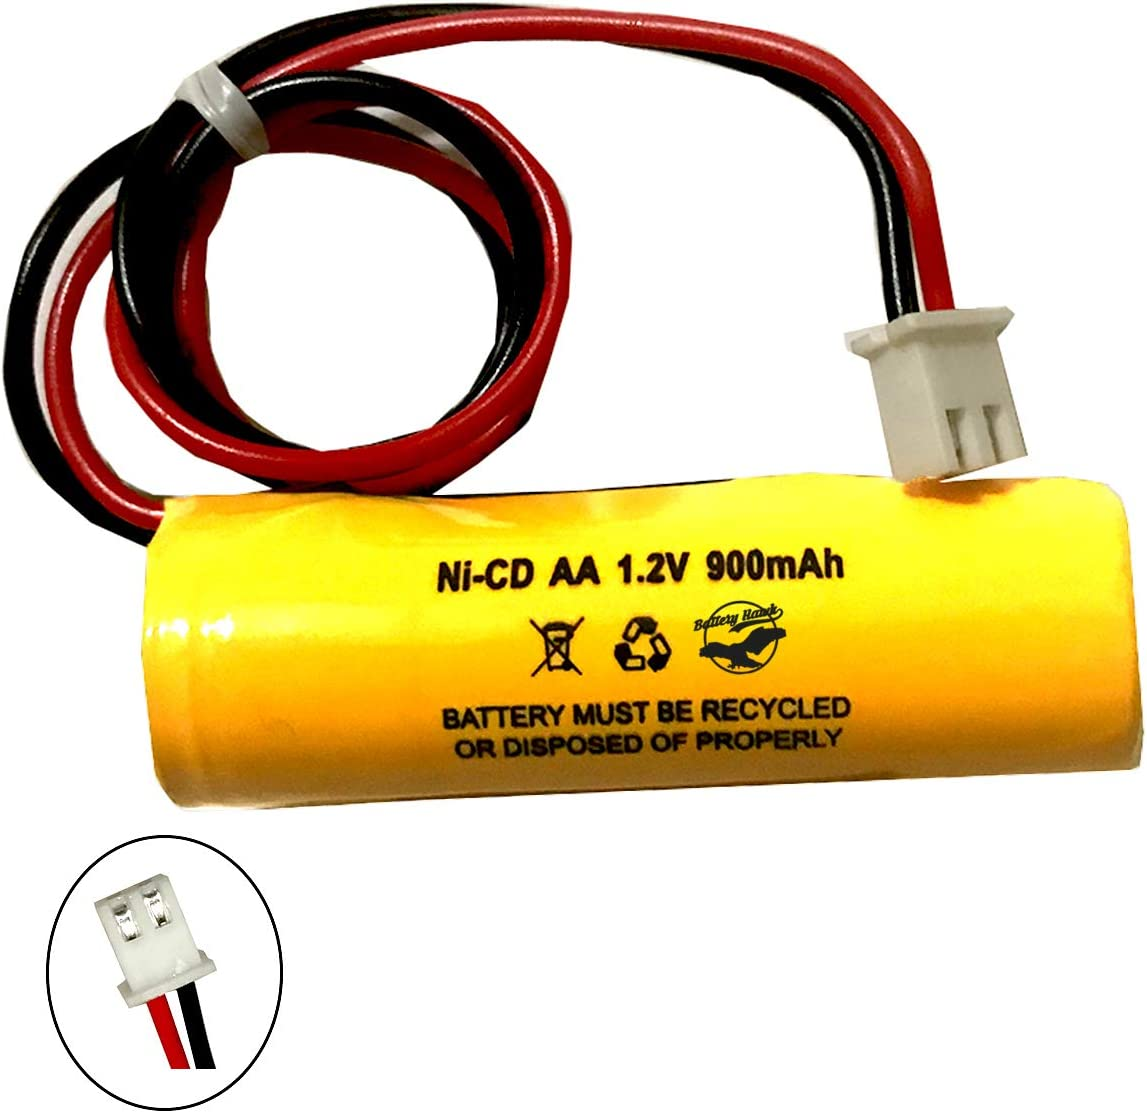 XML Battery ELB-B001 Lithonia ELBB001 Unitech AA900MAH 3.6v 900mAh Ni-CD Rechargeable Battery Pack Replacement for Exit Sign Emergency Light 5 Pack